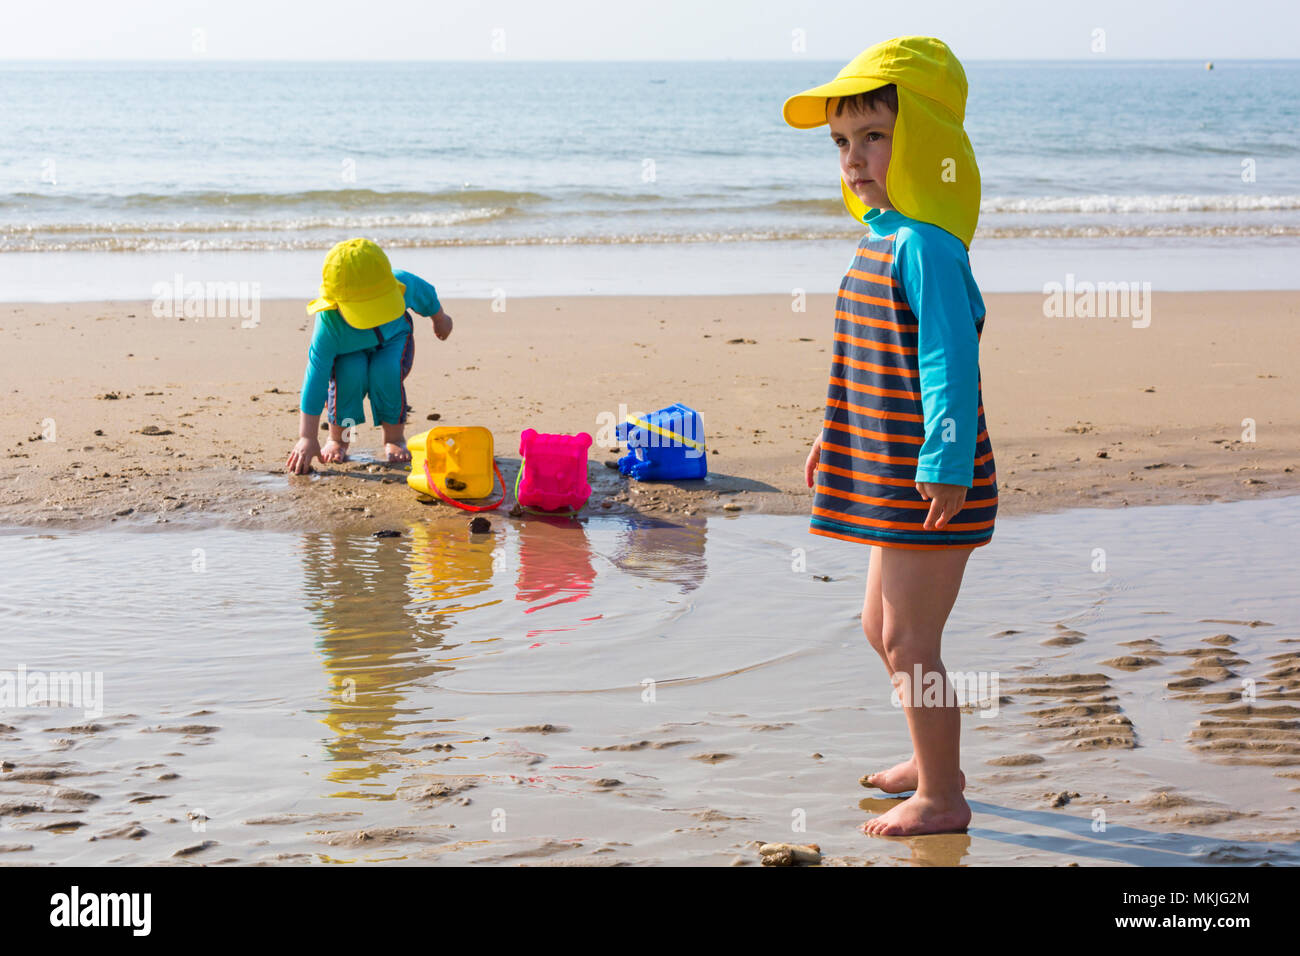 Bournemouth, Dorset, UK. 8th May 2018. UK weather: warm sunny start to the day, as two young lads (aged 4 and 2) enjoy playing at the seaside with a game of throw the shells and stones into the buckets on the seashore at Alum Chine beach. Credit: Carolyn Jenkins/Alamy Live News Stock Photo